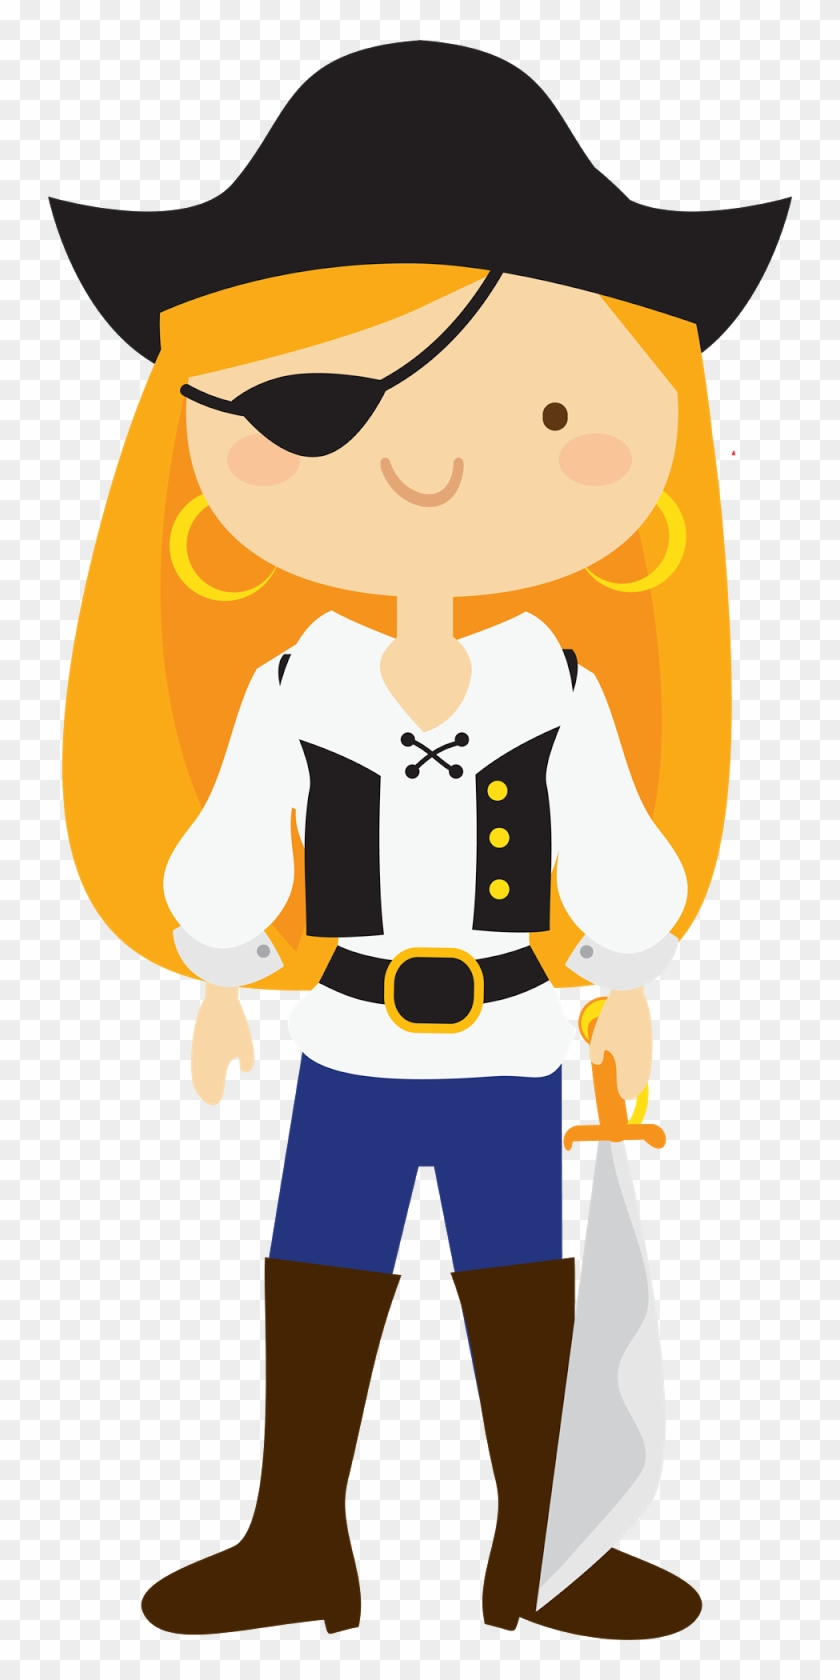 Labor Day Is Approaching, And The Pirate Queen Has - Pirate #55535